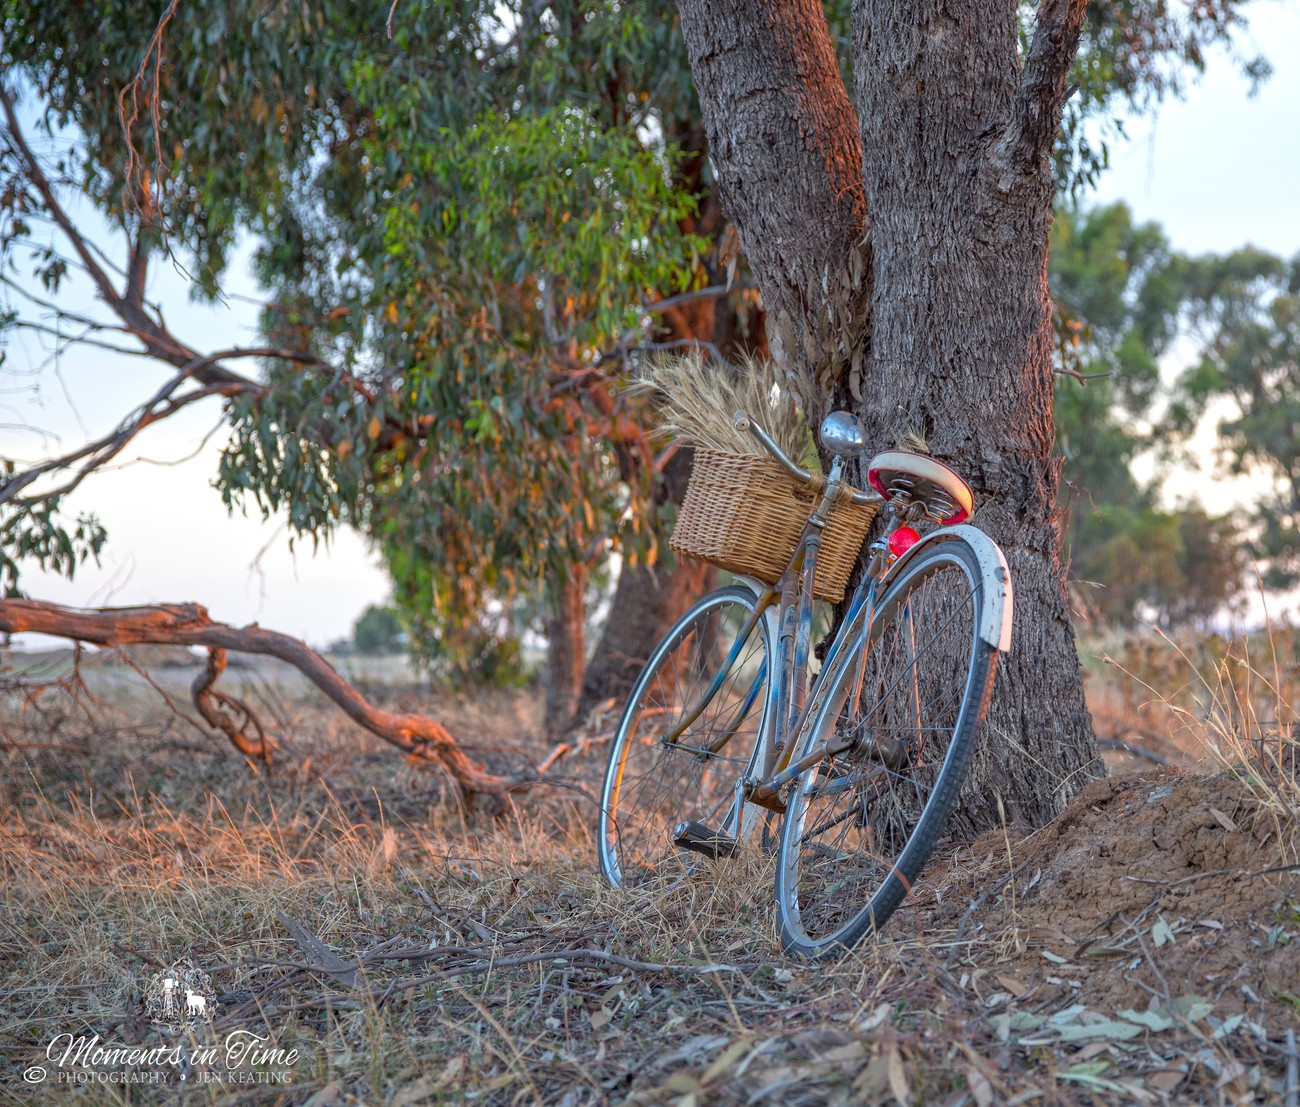 Old ladies bicycle leans against tree nice bunch wheat in basket...... nice evening light.